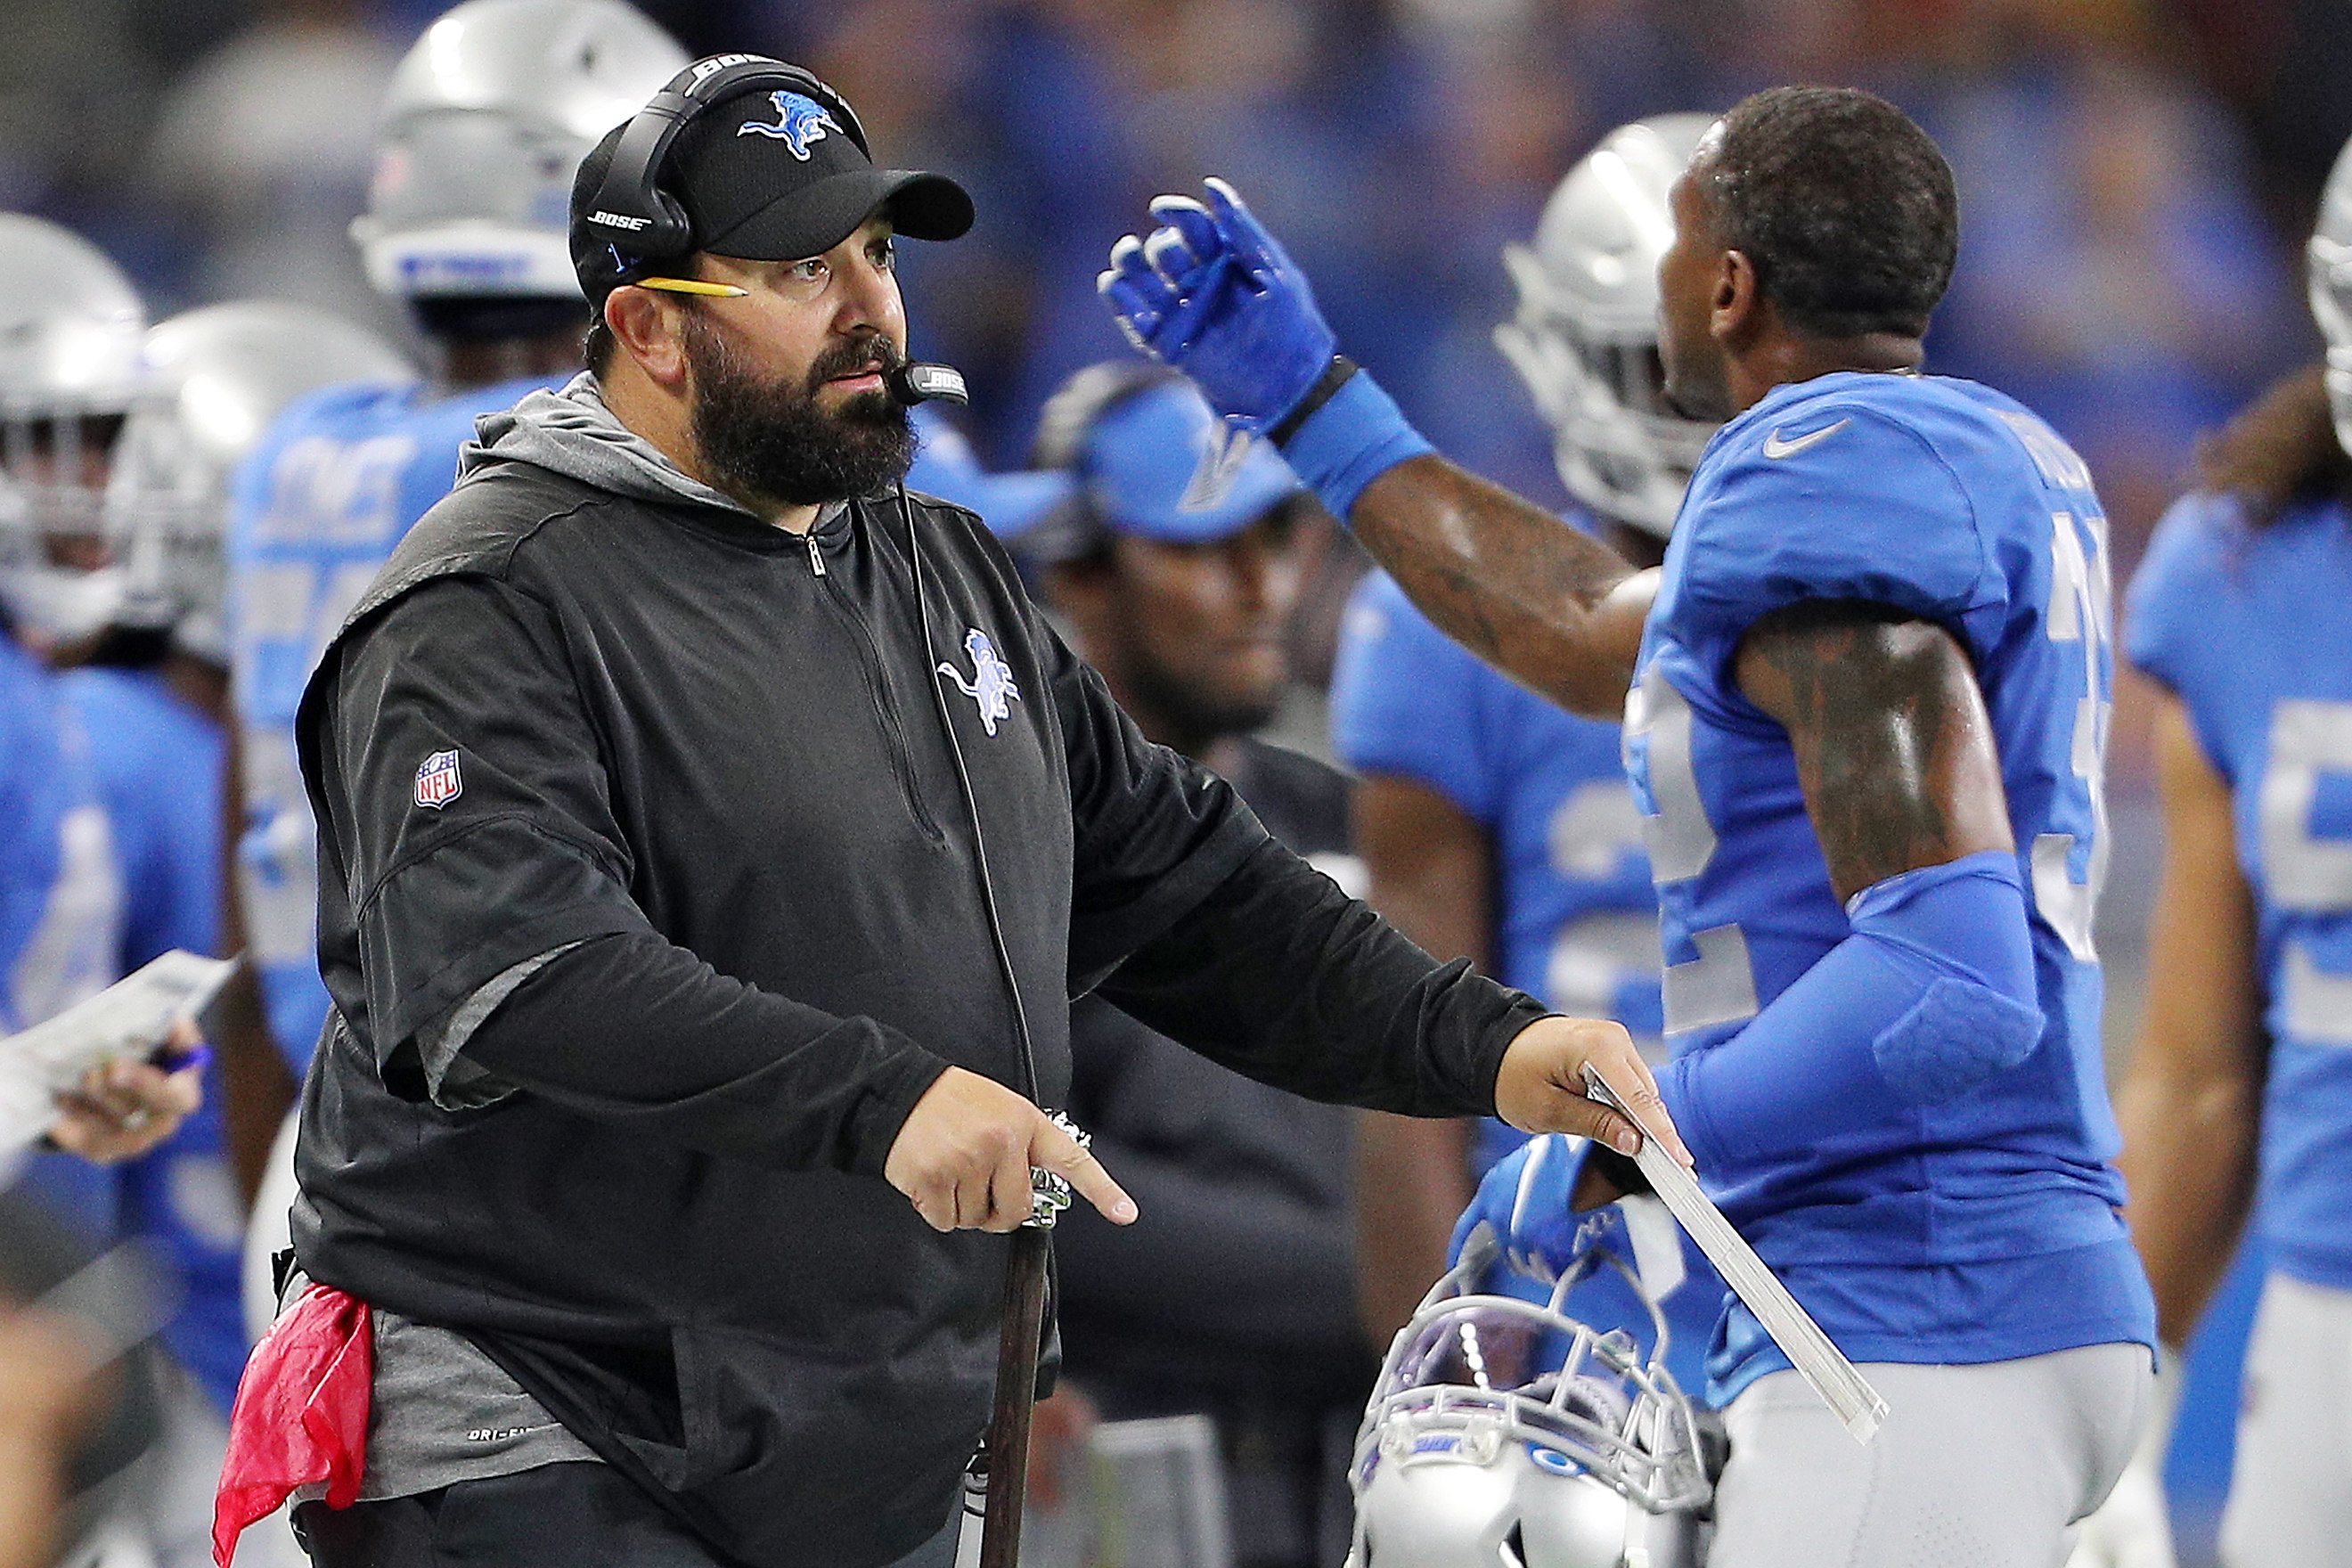 Detroit Lions introduce all-time team at halftime with 2 current players featured